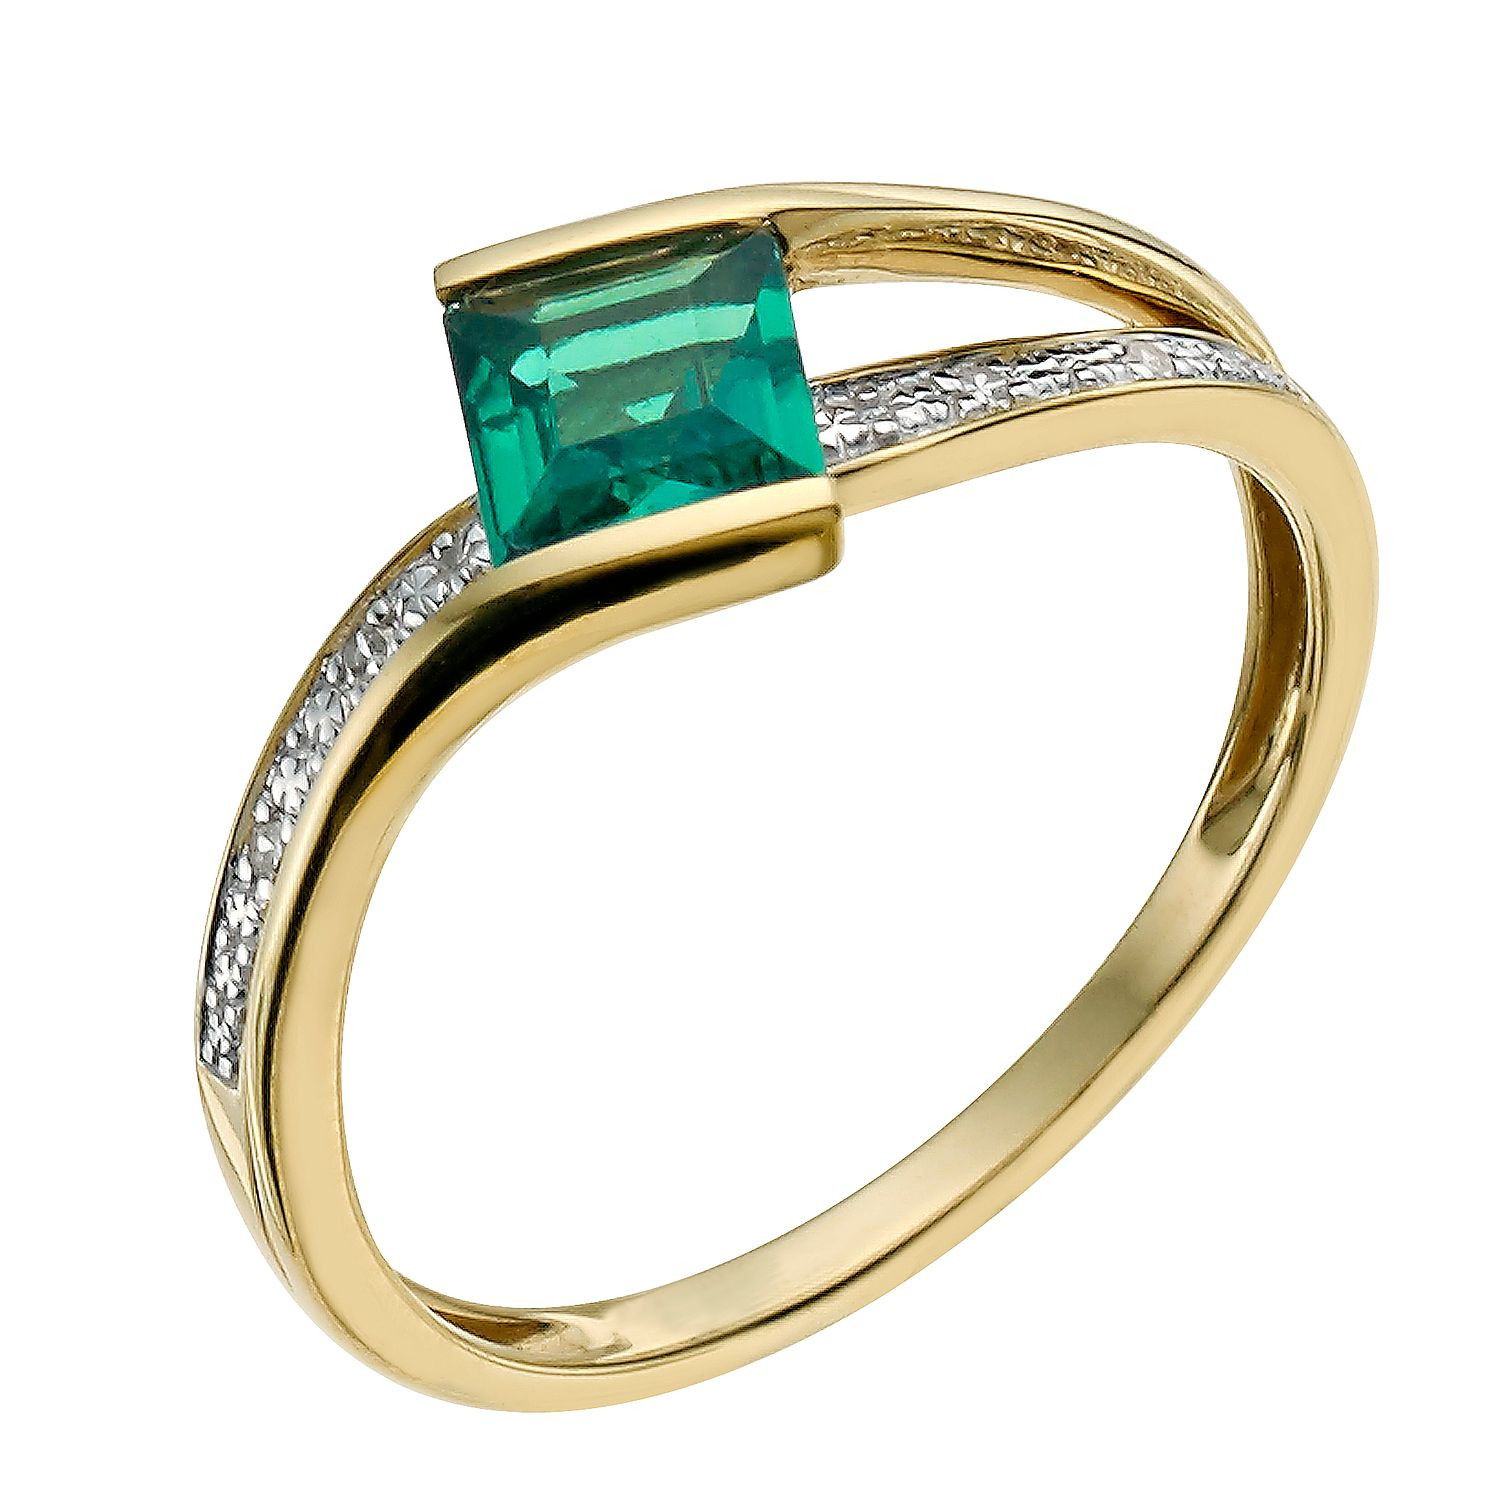 ring mens diamond j emerald band jewelry s il jewels yellow men accents cabochon fullxfull product r gold